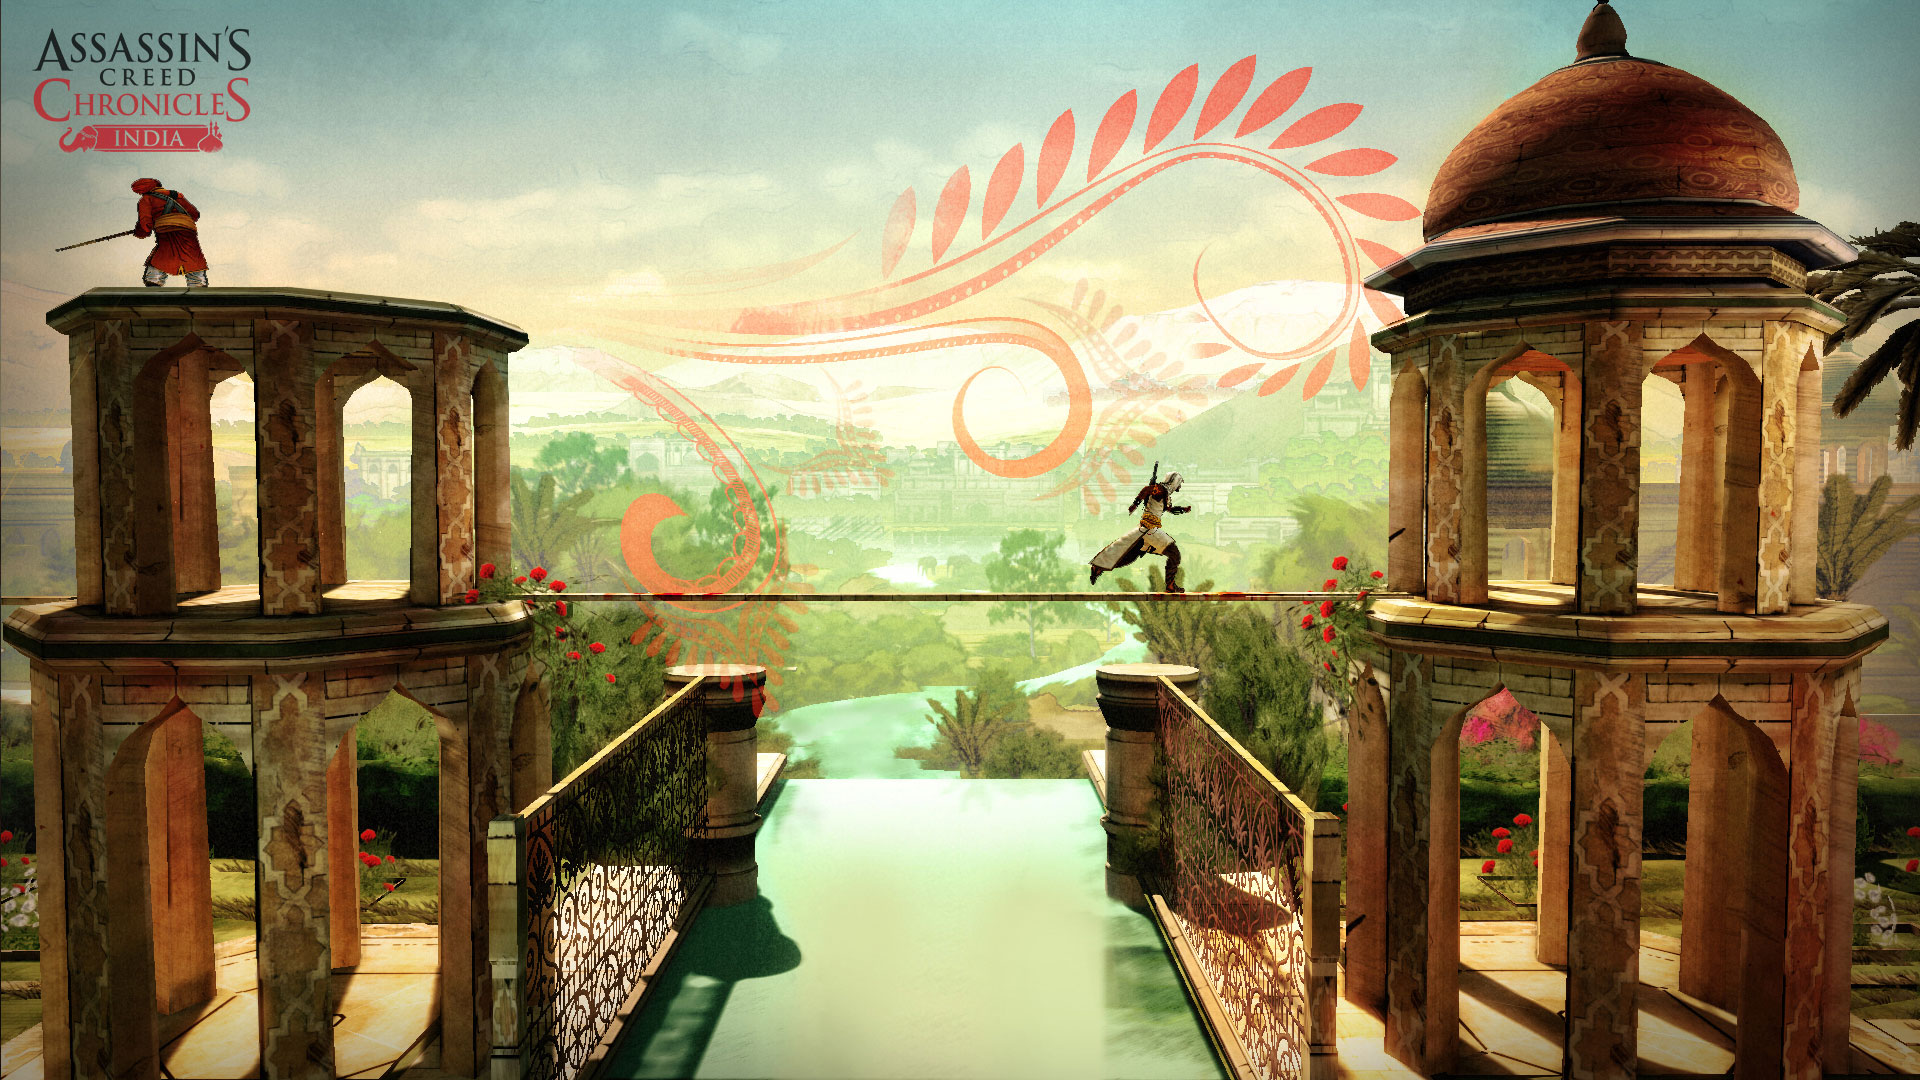 Trailer releases for Assassin's Creed Chronicles: India